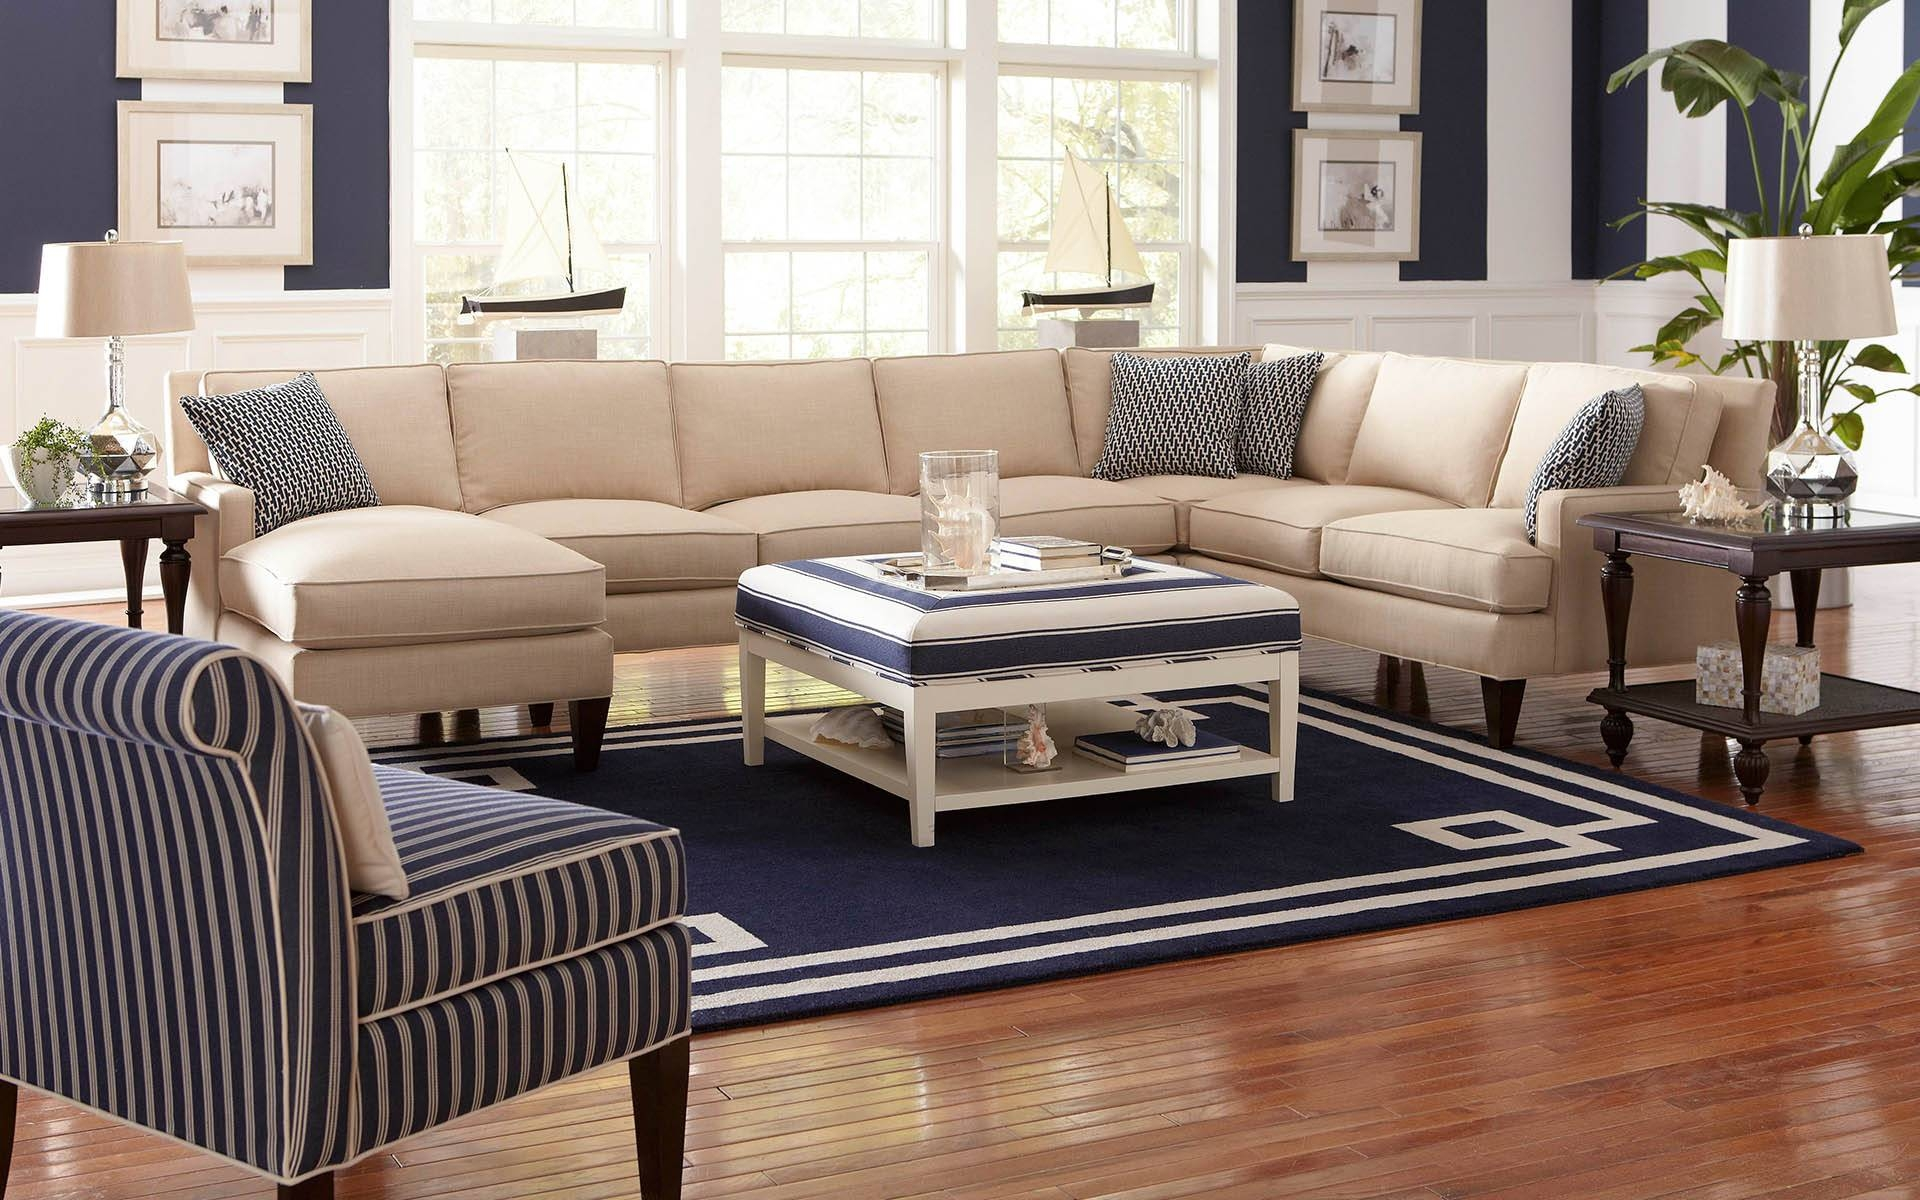 Cozy Sectional Sofas Havertys 21 For Abbyson Living Charlotte intended for Abbyson Living Charlotte Beige Sectional Sofa and Ottoman (Image 11 of 30)